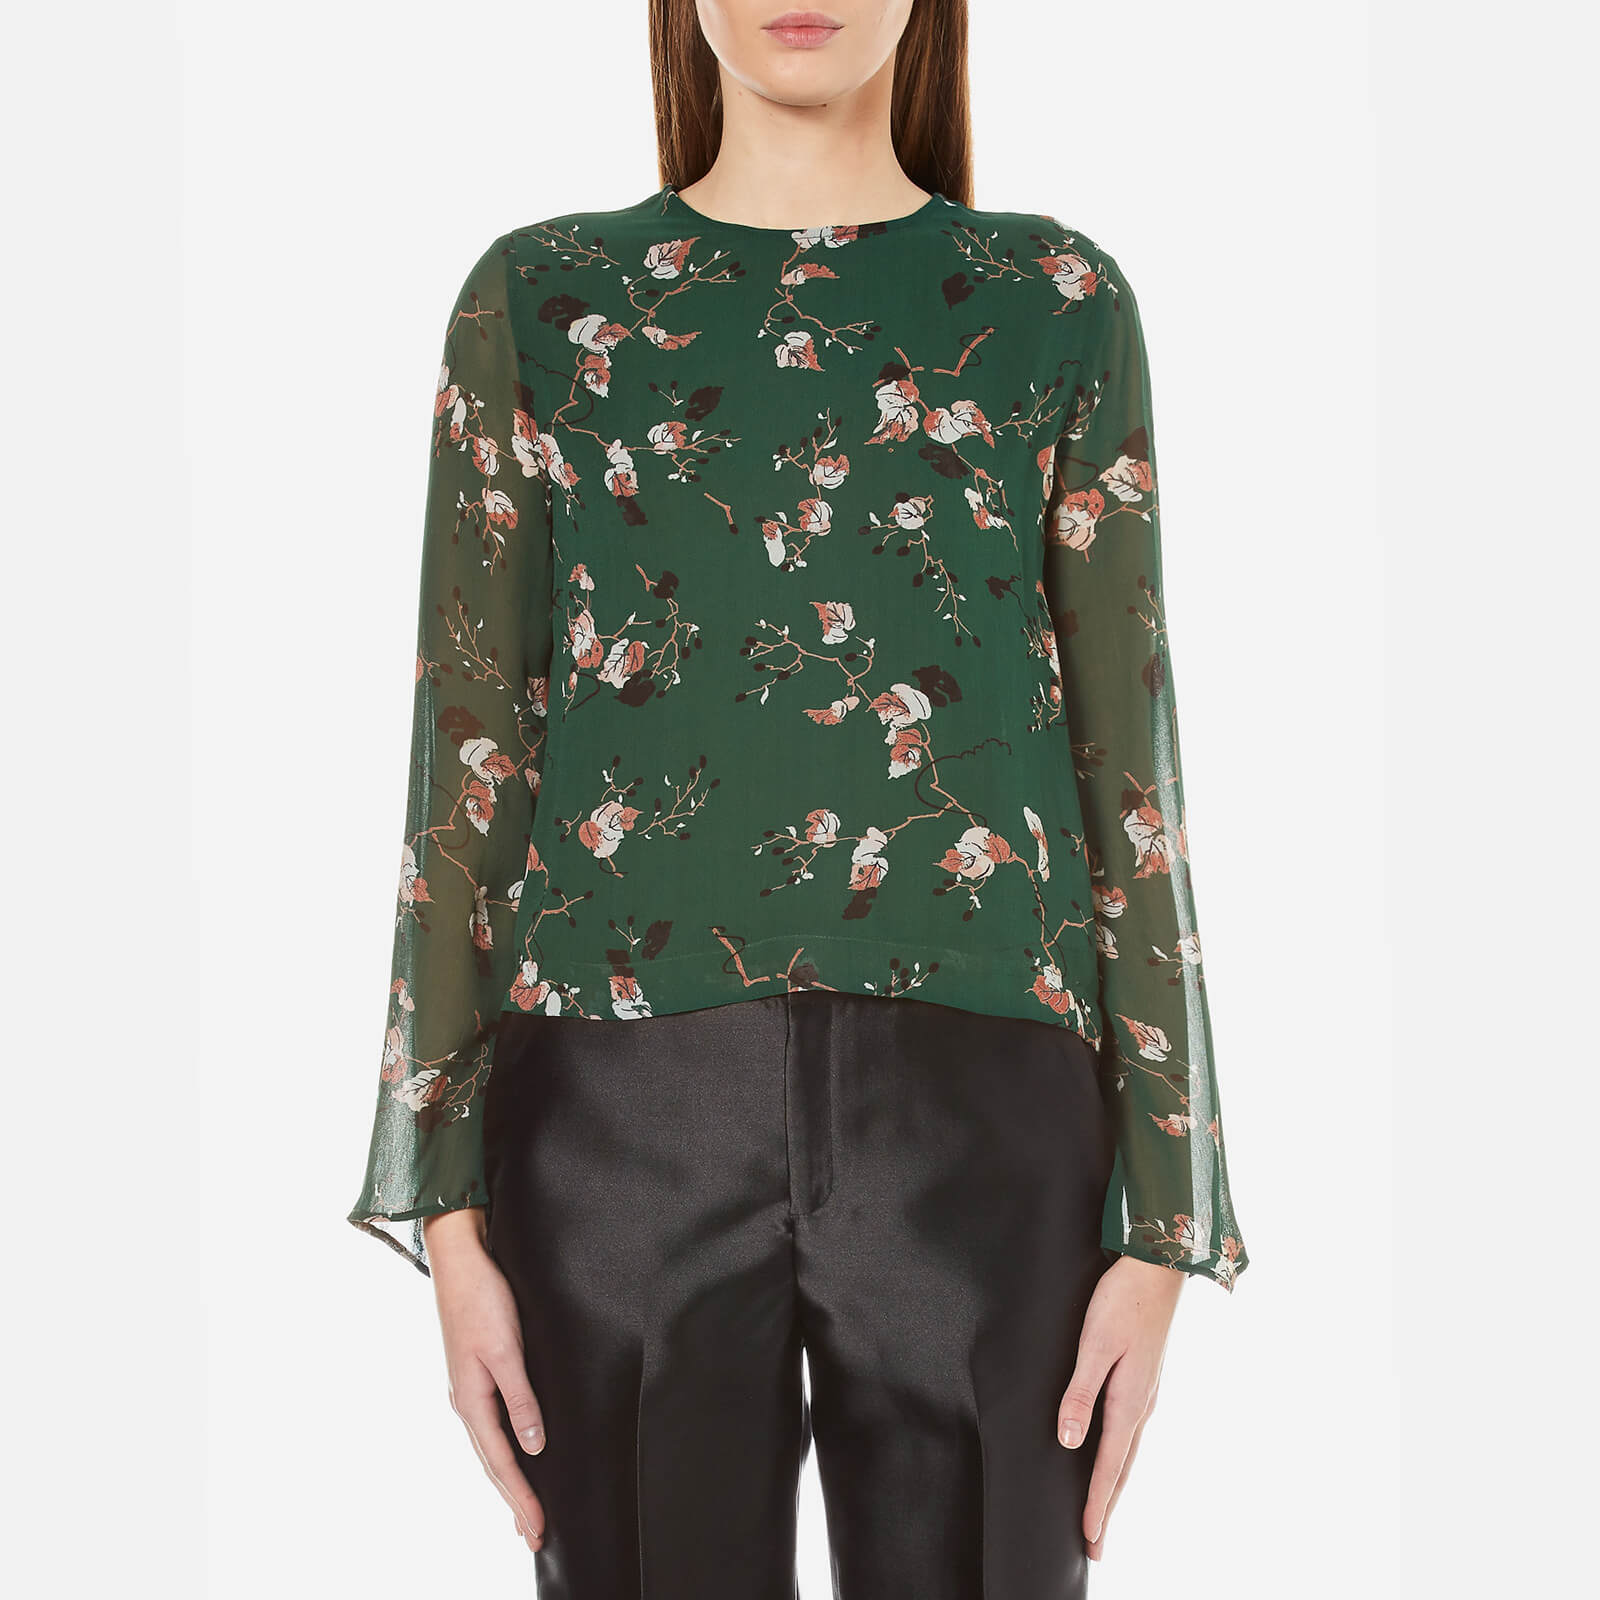 b845e757 Ganni Women's Marietta Georgette Long Sleeve Top - Pine Grove Leaves - Free  UK Delivery over £50